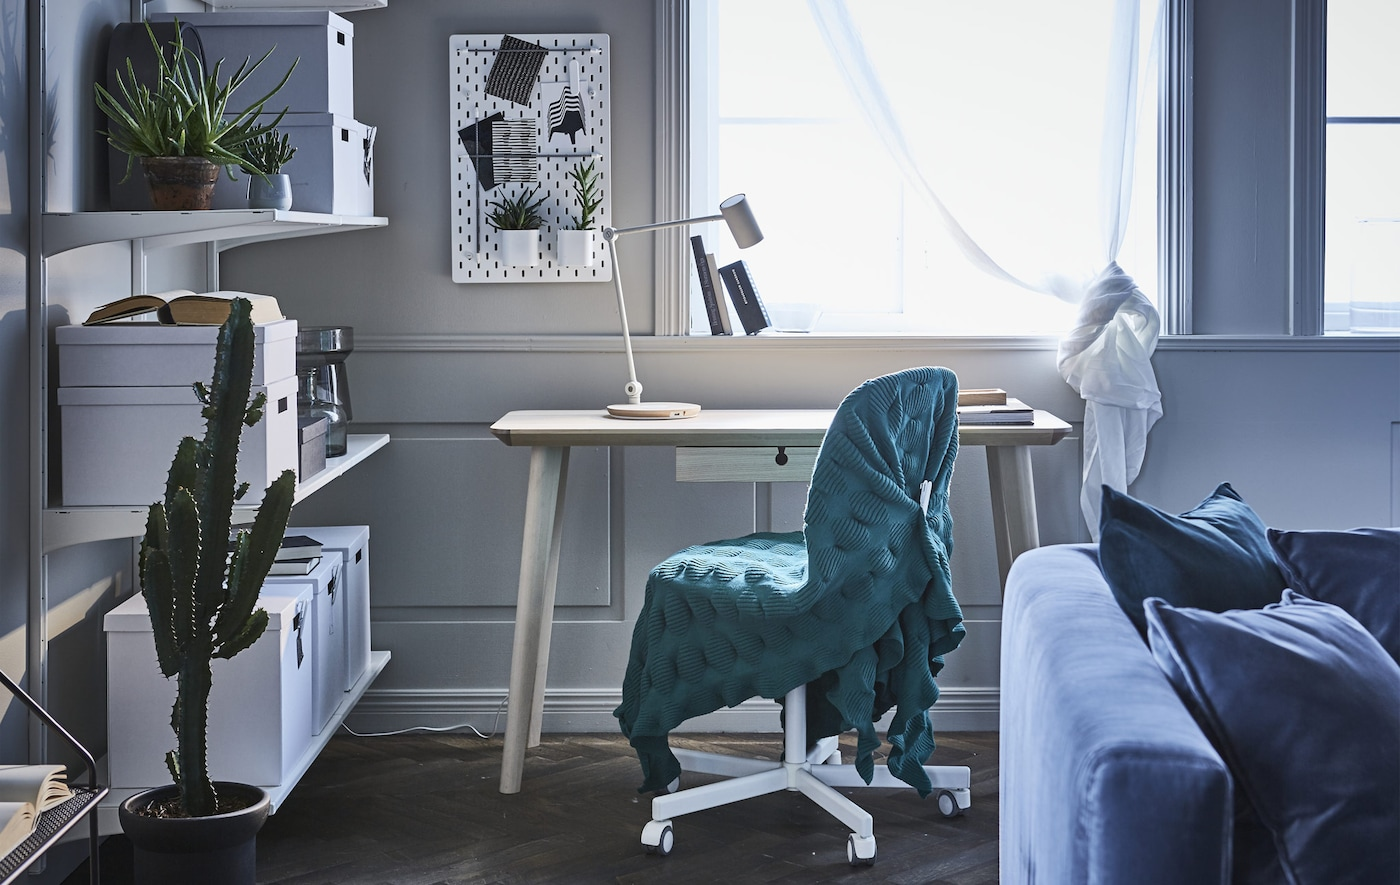 A home office workspace in a living room. Includes a desk, a chair draped in a throw, and open storage shelves